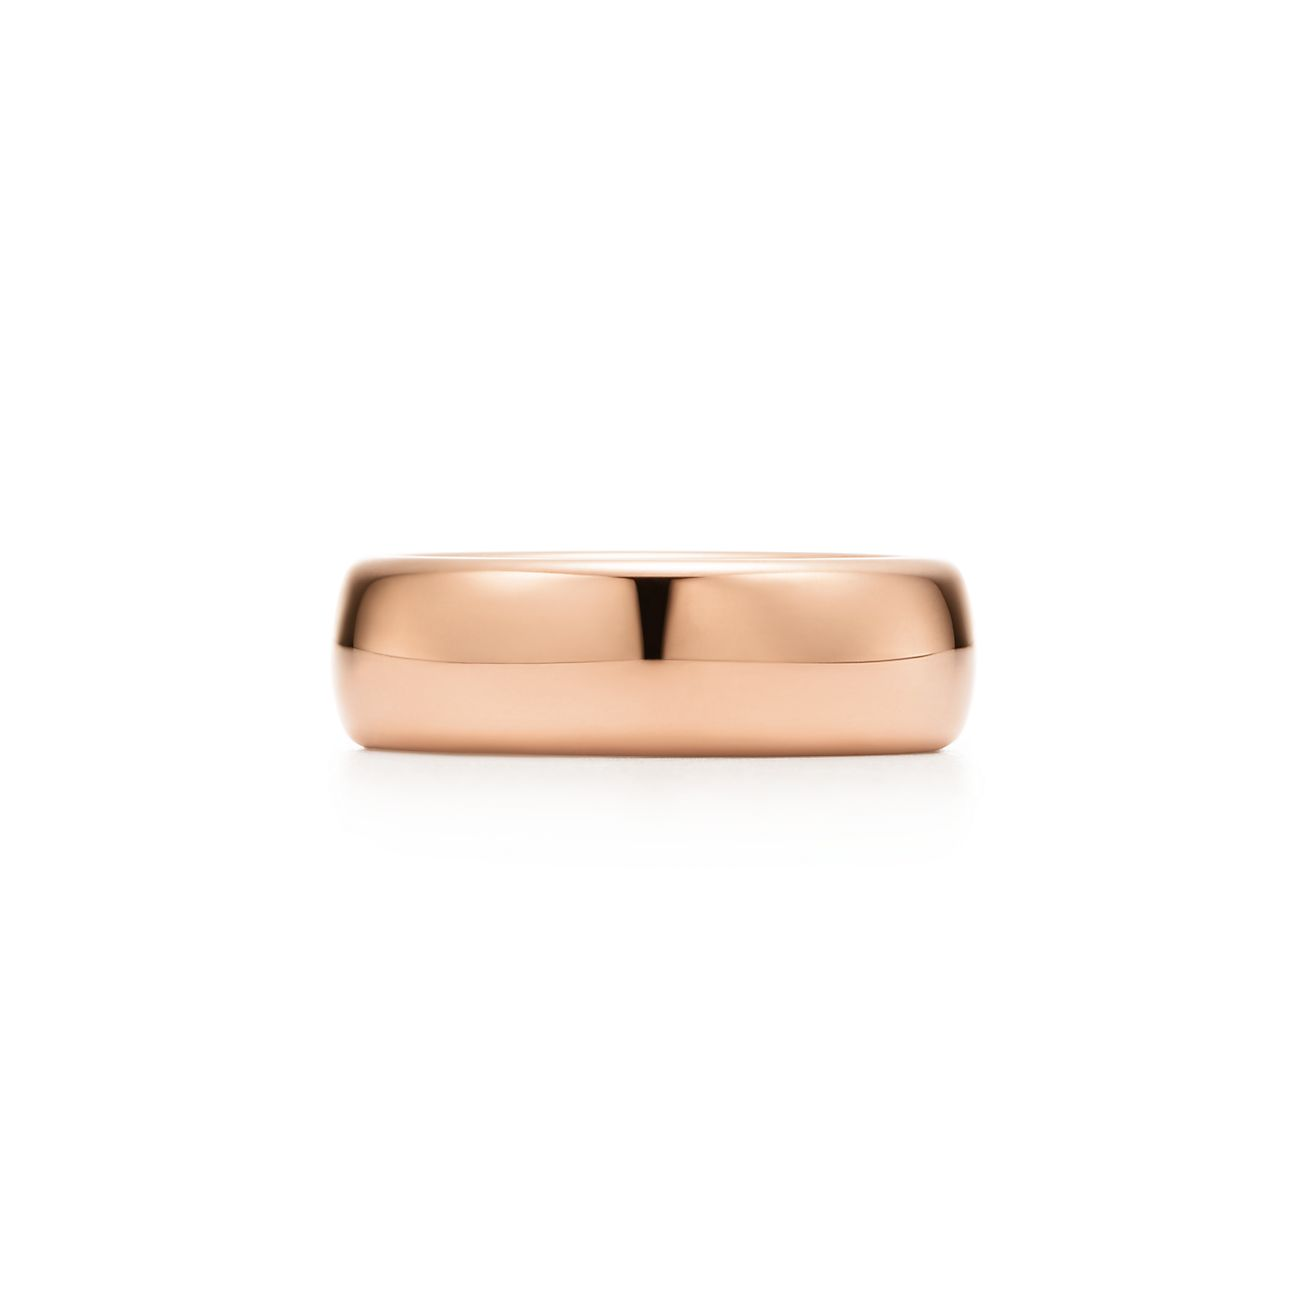 Tiffany Classic wedding band ring in 18k rose gold, 2 mm wide - Size 7 1/2 Tiffany & Co.